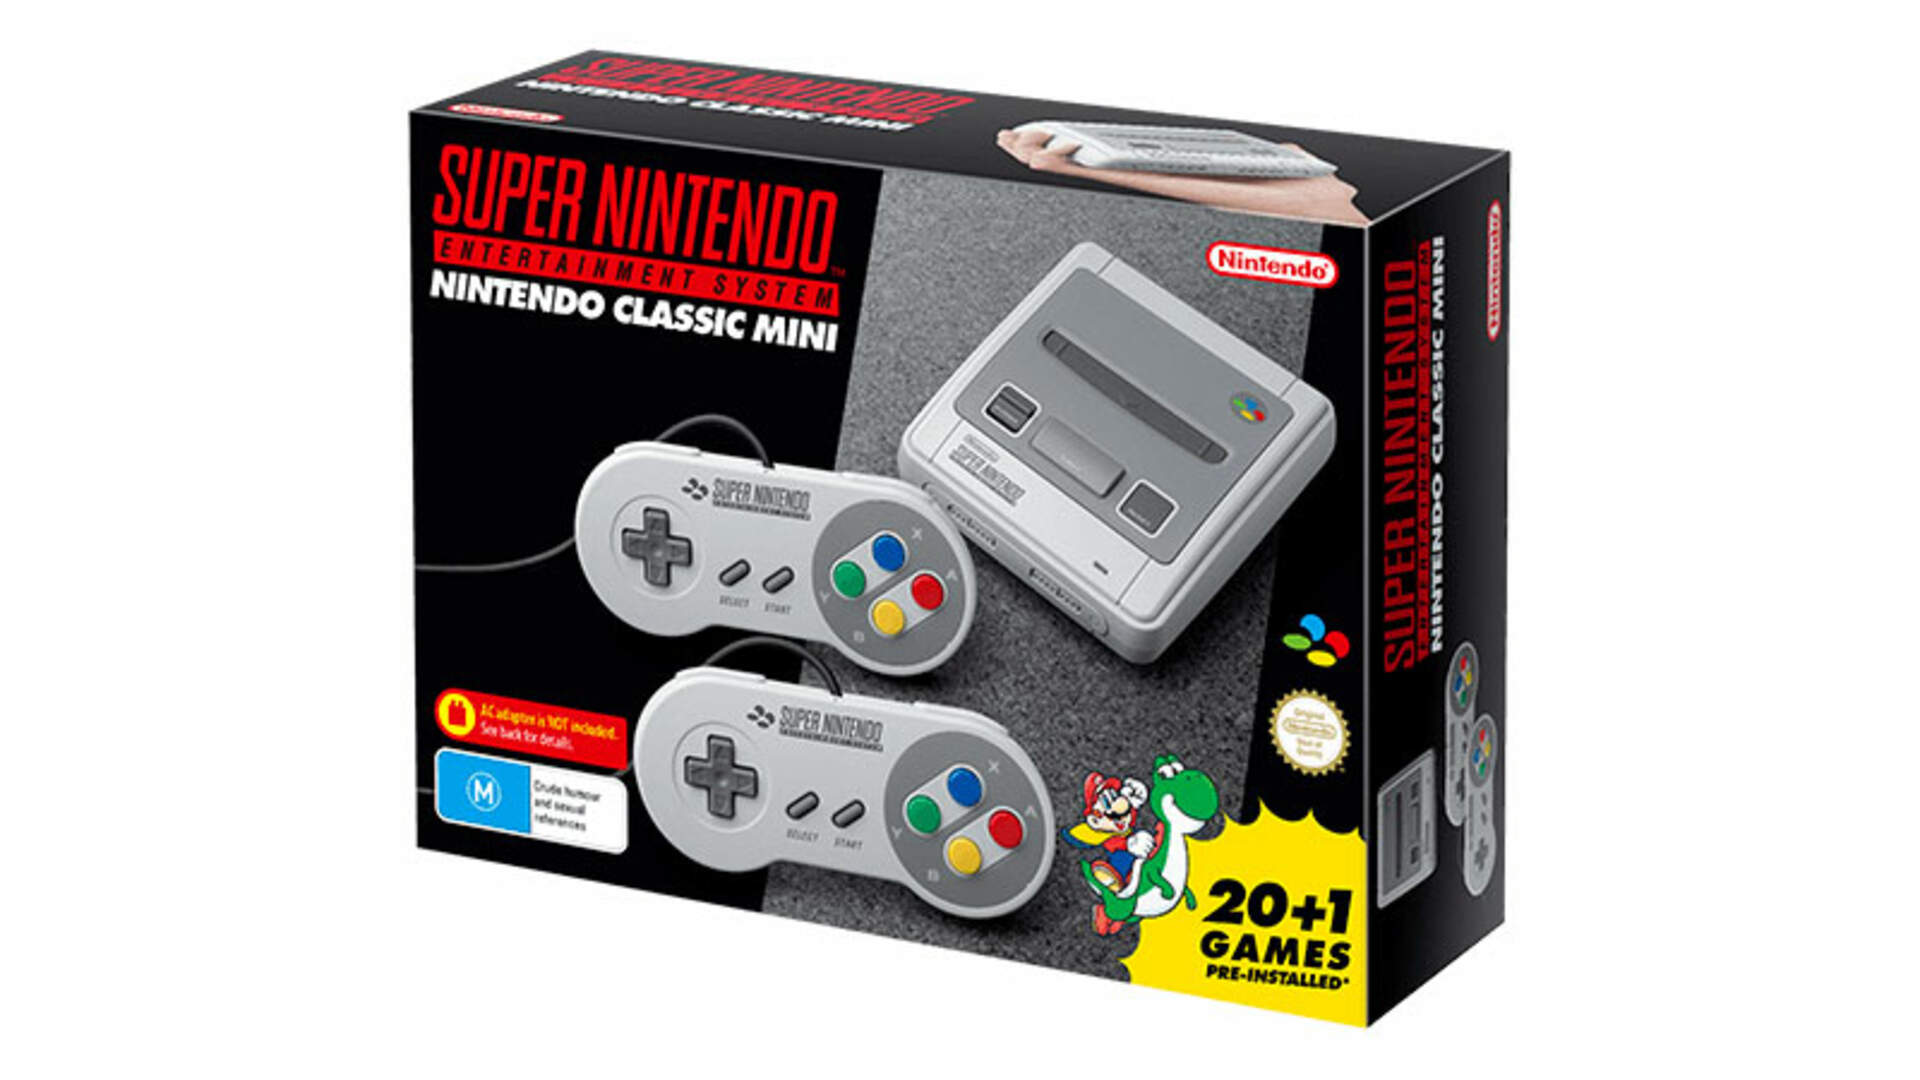 The Japanese Version of the SNES Classic Comes With Different Games